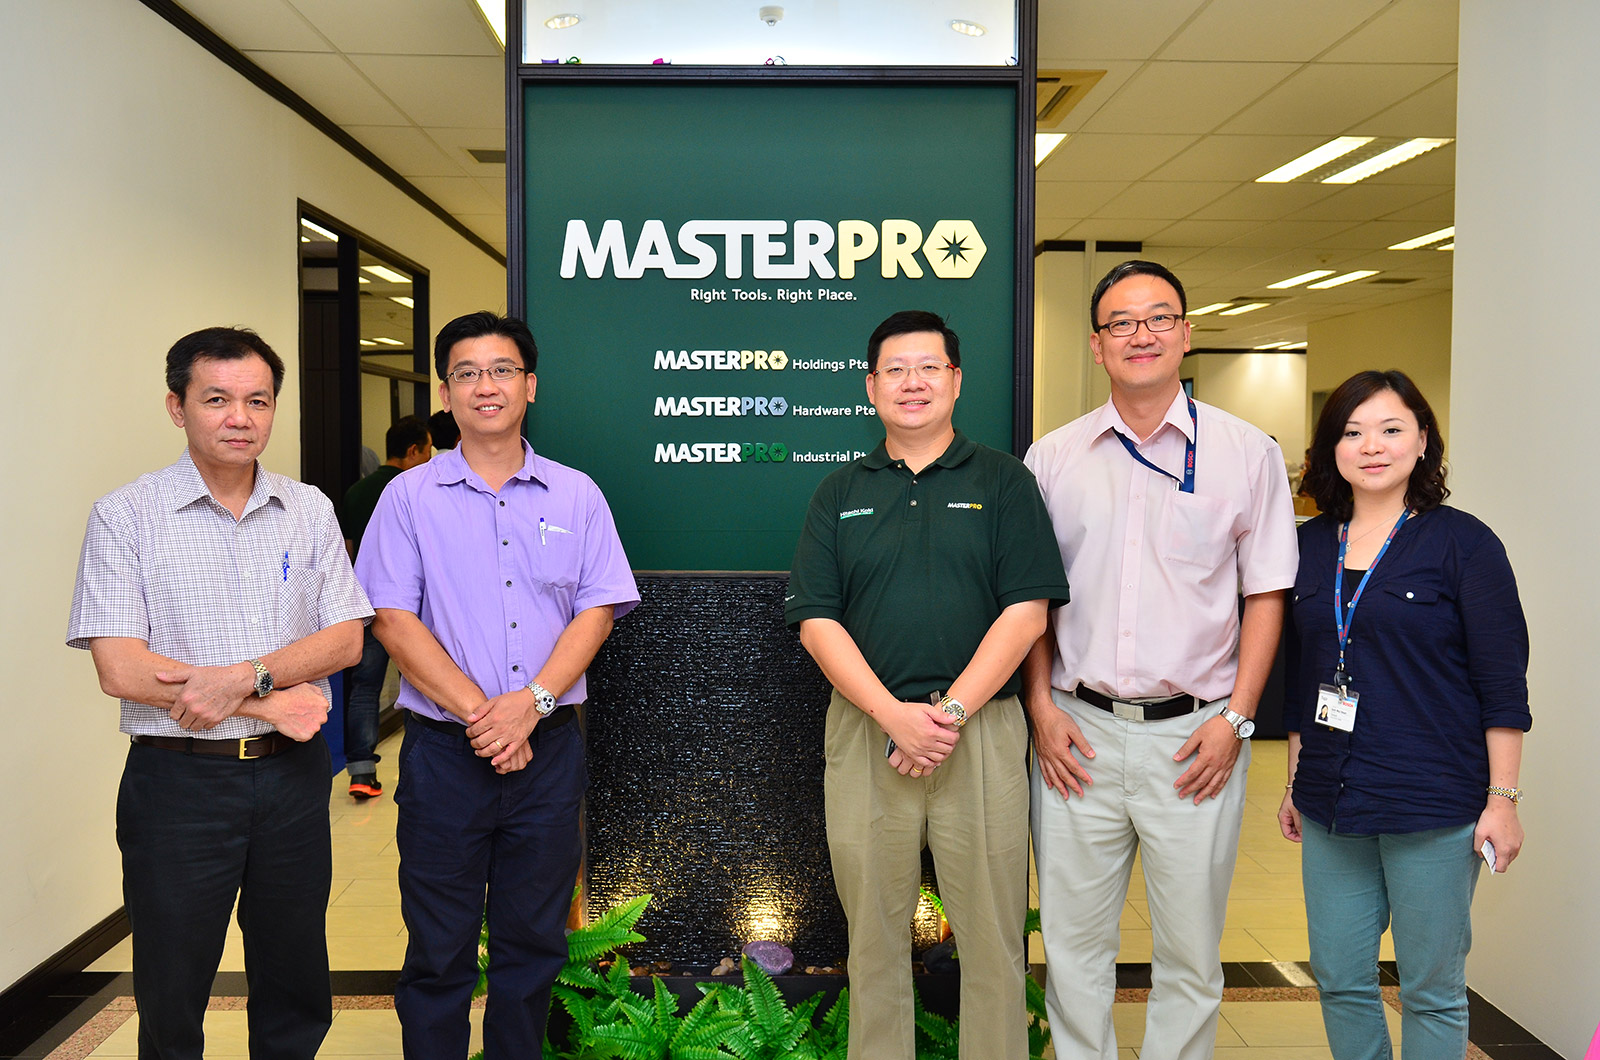 MasterPro HQ Grand Opening - 2013 - Events